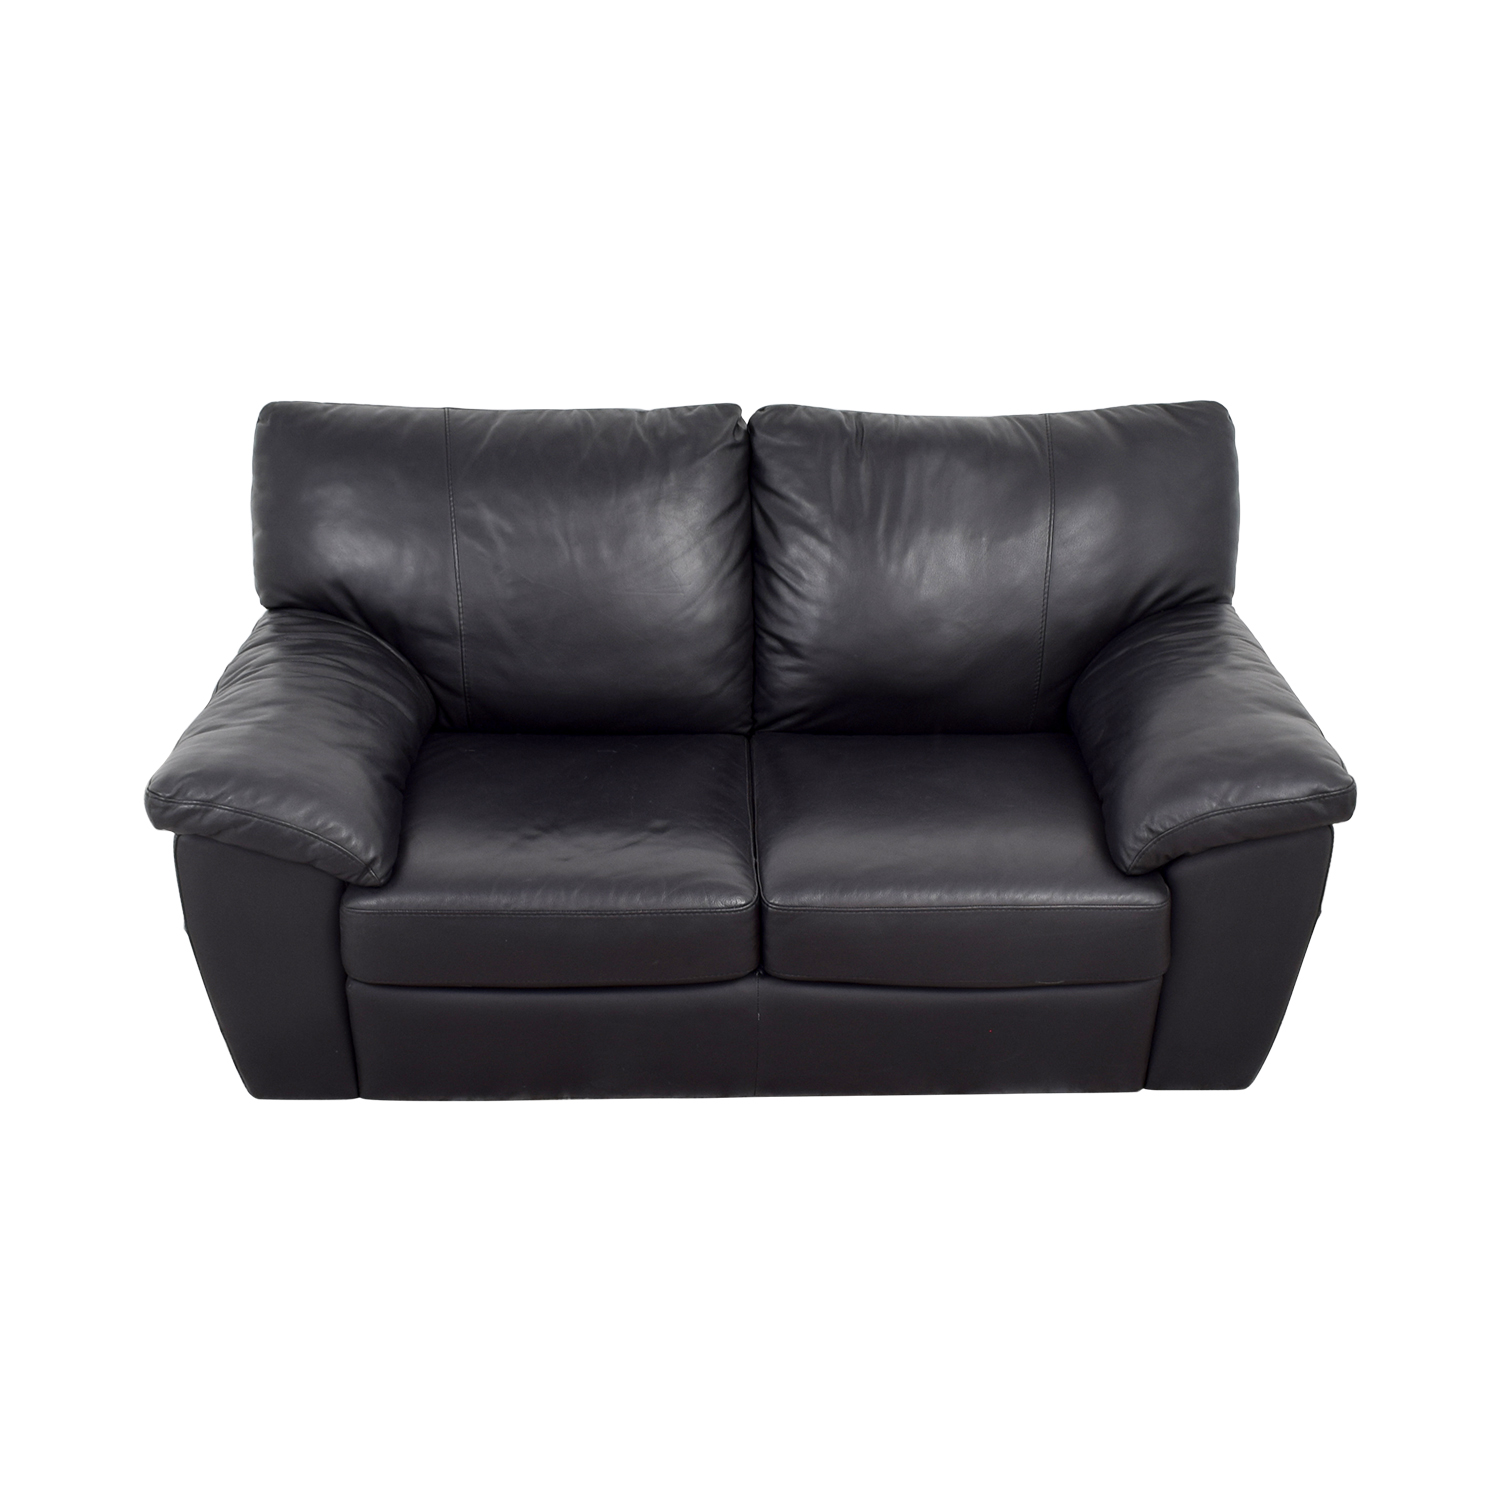 IKEA Black Leather Two-Cushion Couch / Sofas